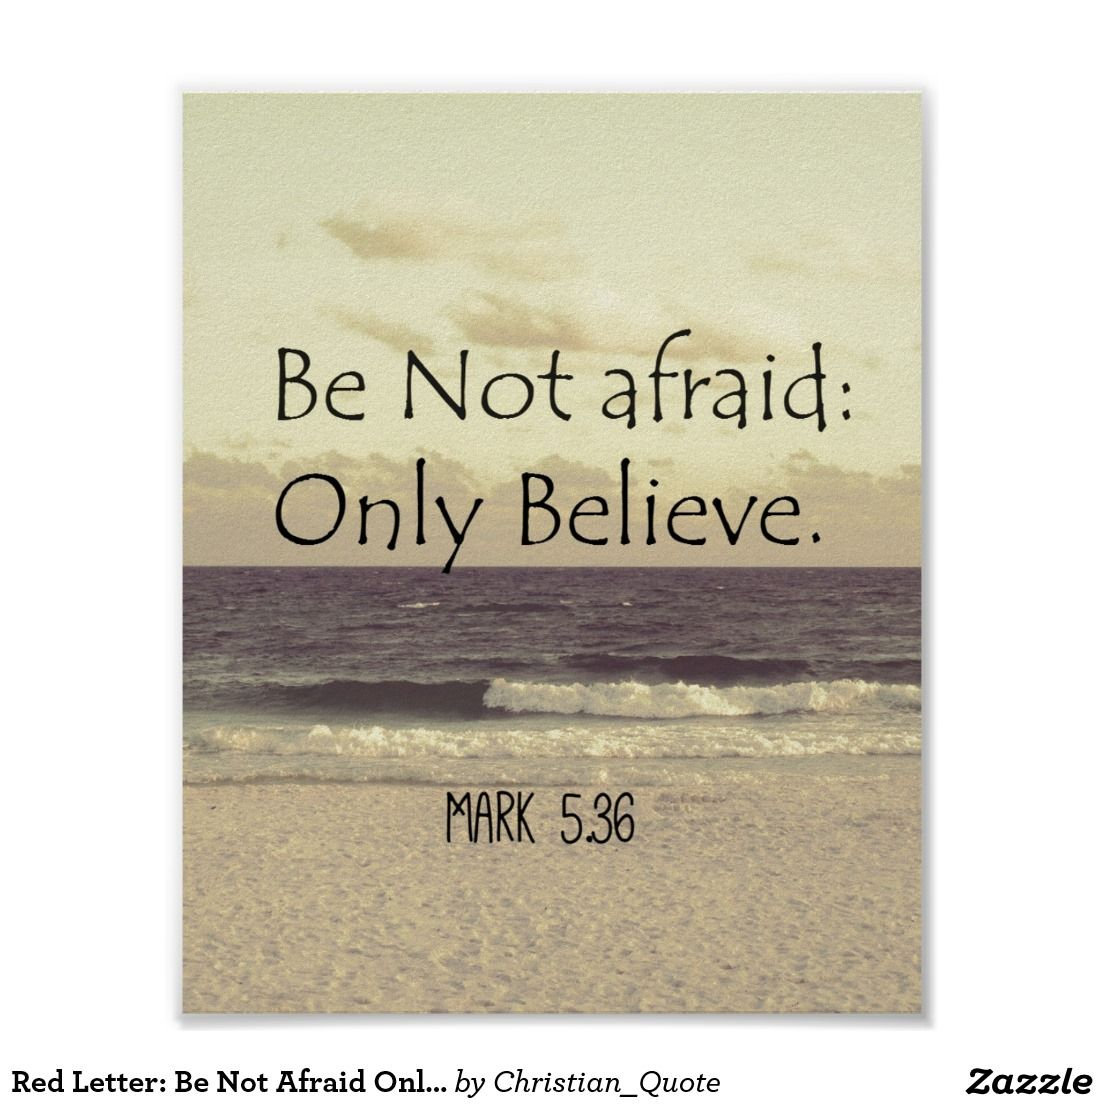 Red Letter: Be Not Afraid Only Believe Bible Verse Poster